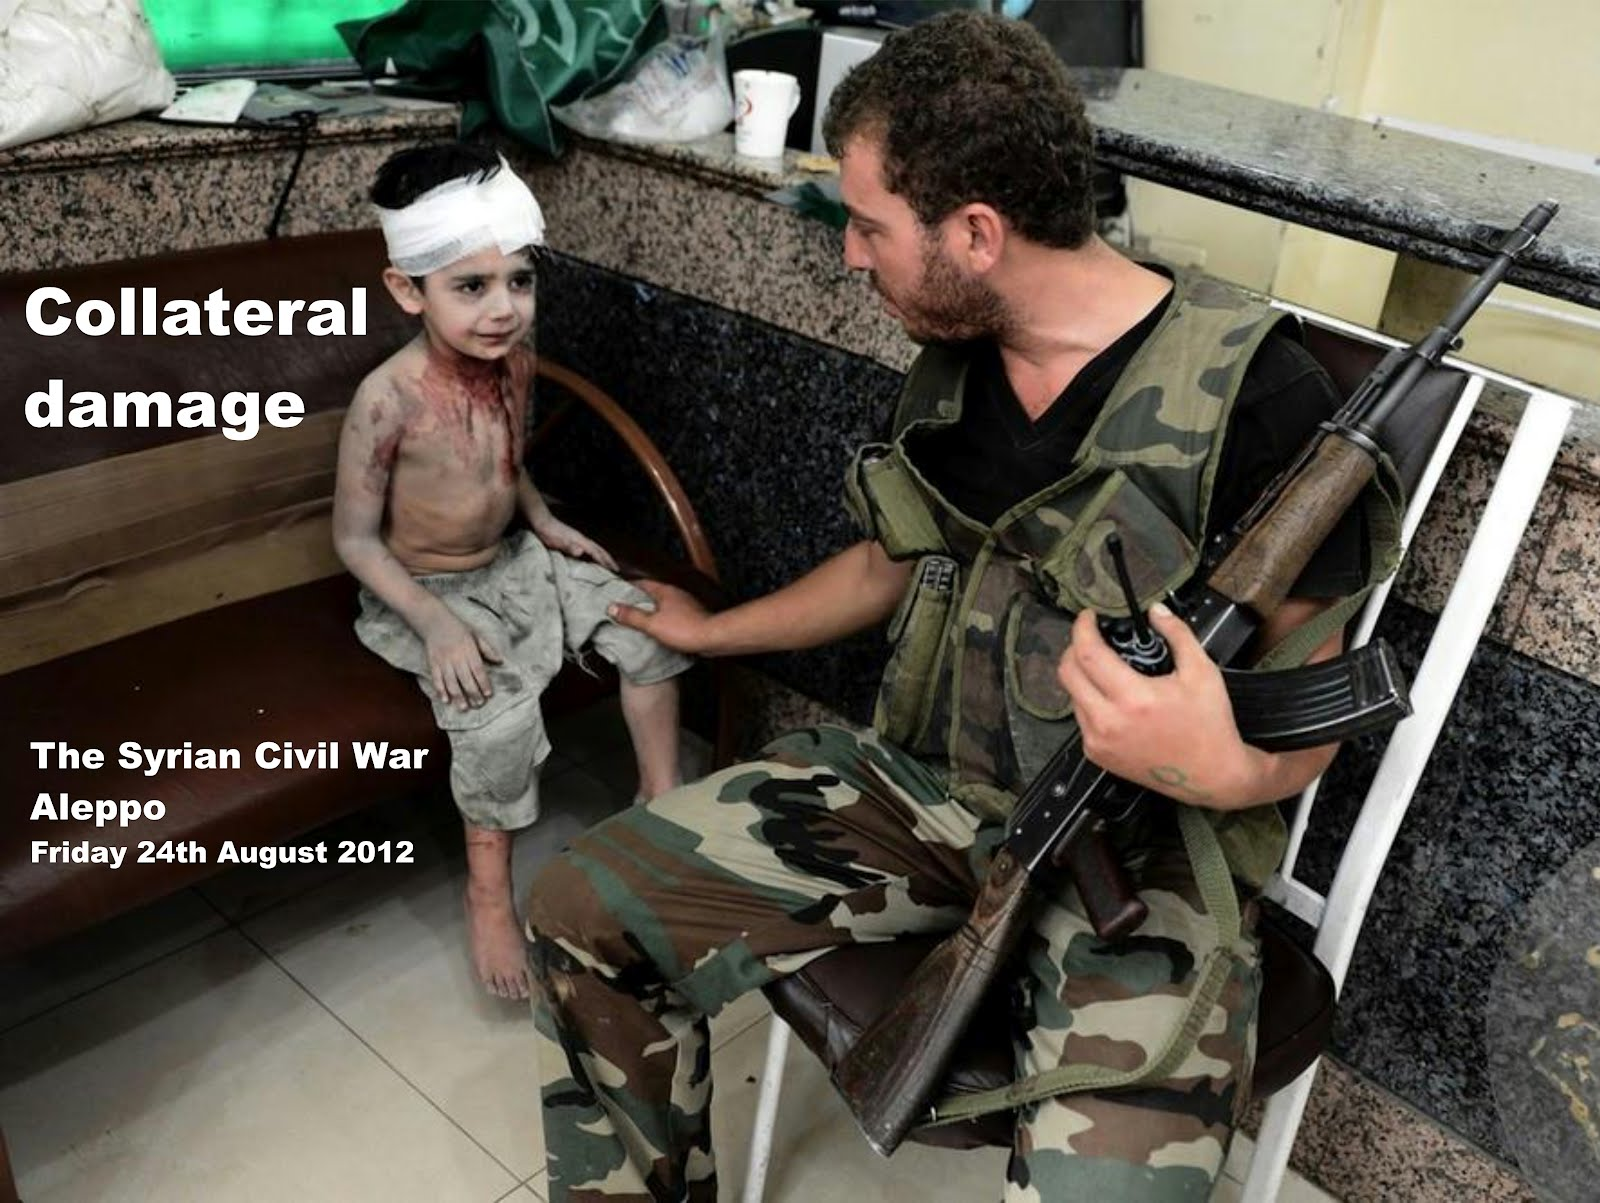 collateral-damage-the-syrian-civil-war-aleppo-friday-24th-august-2012-1